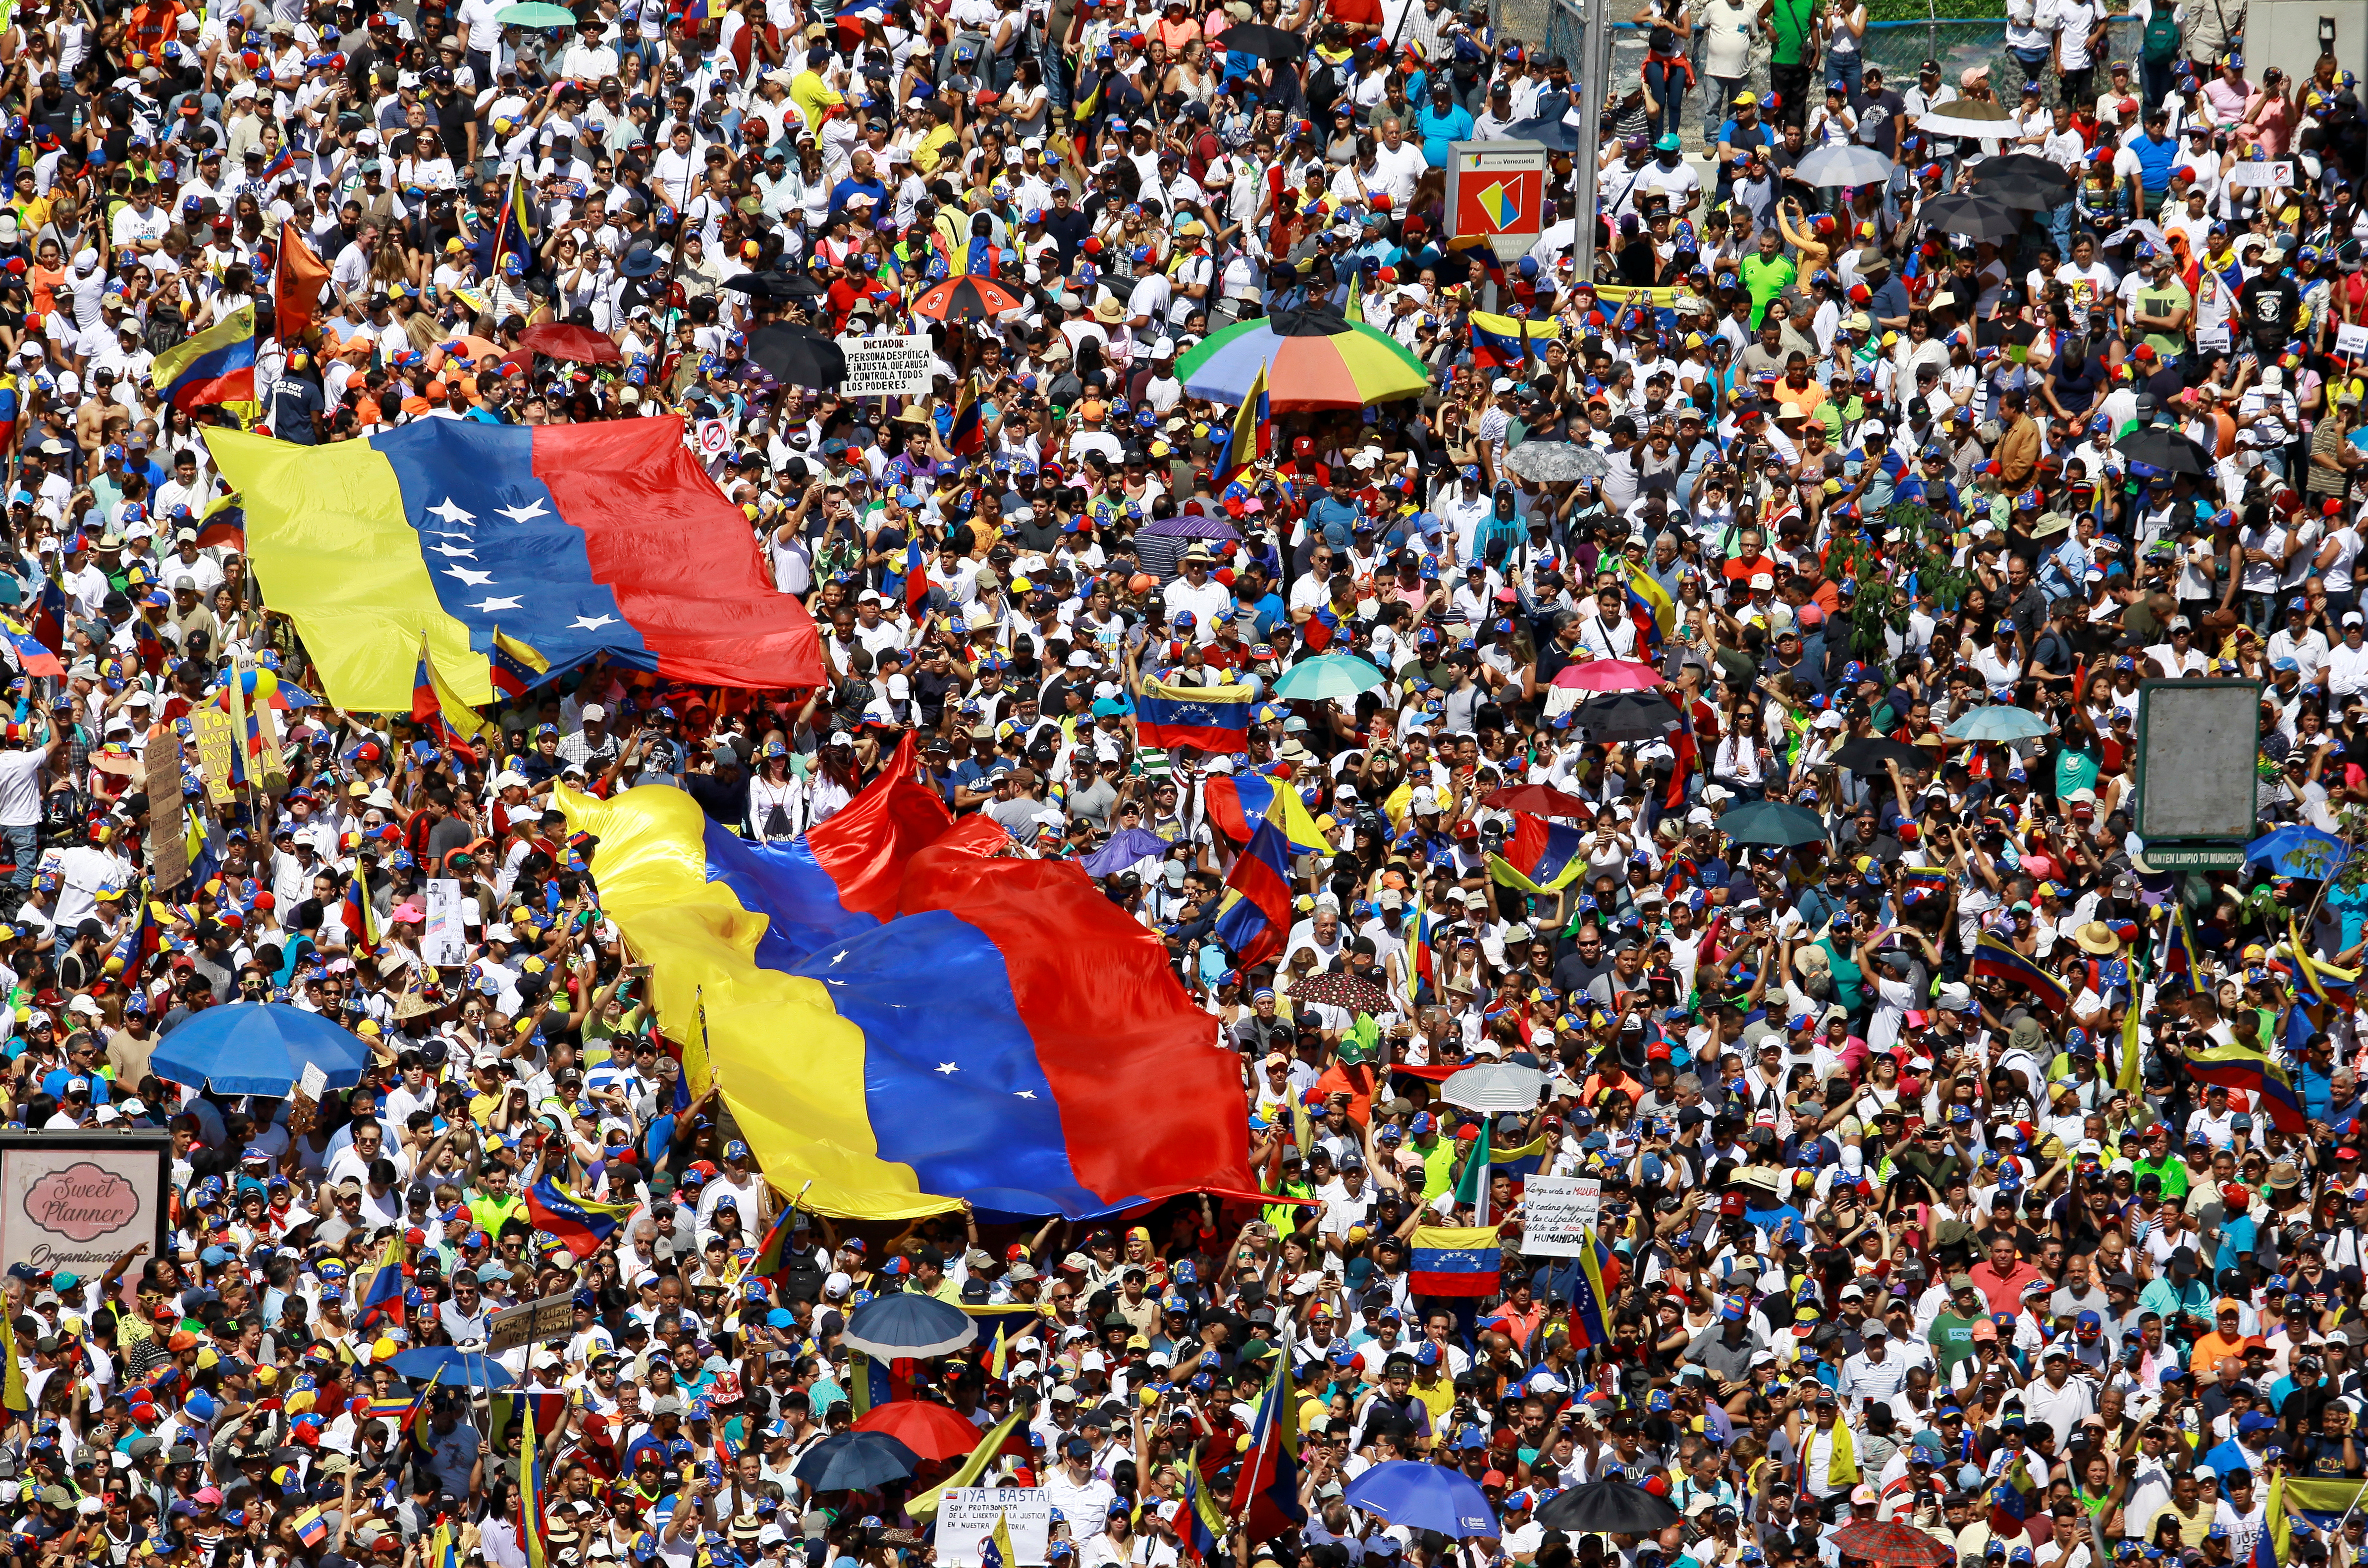 Opposition supporters take part in a rally against Venezuelan President Nicolas Maduro's government in Caracas, Venezuela, Feb. 2, 2019.